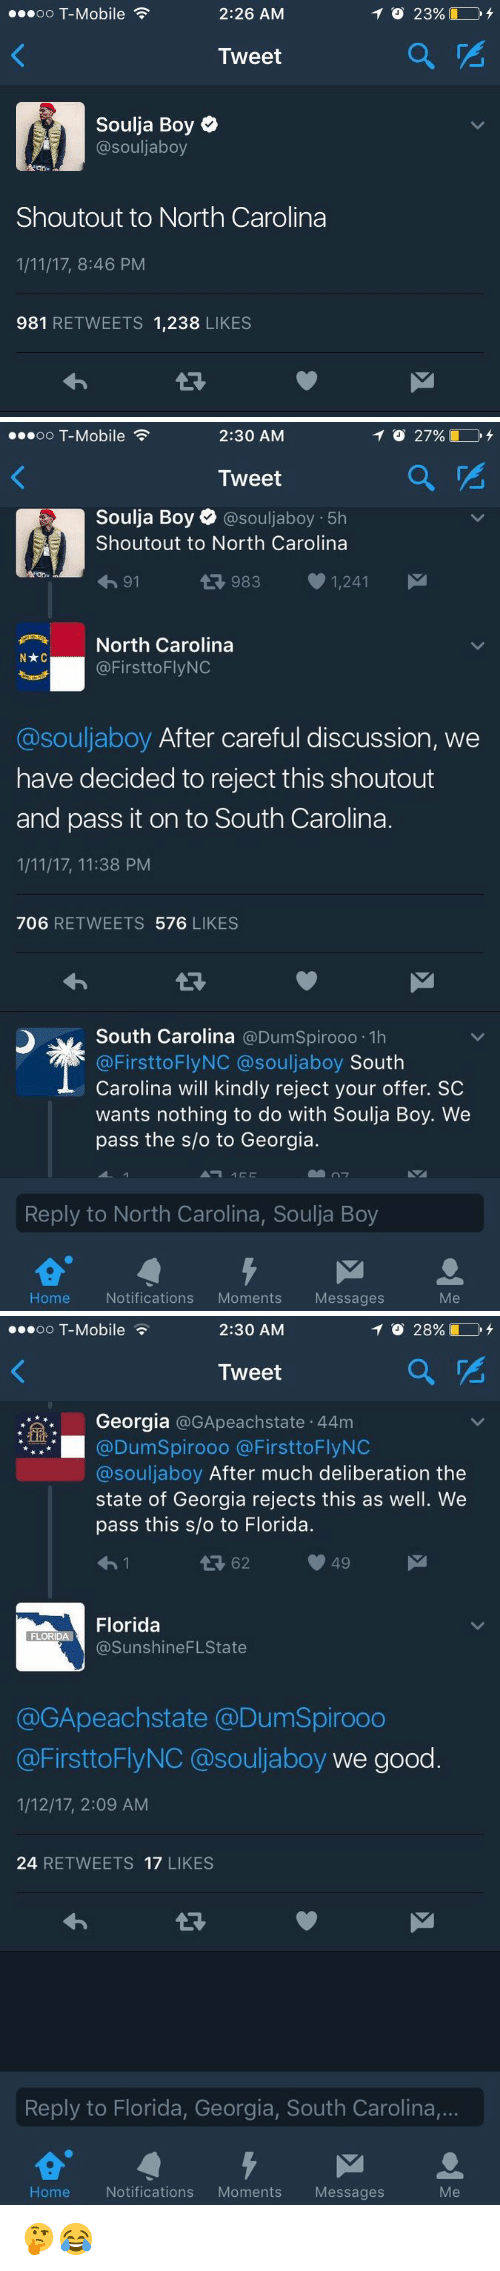 Memes, Soulja Boy, and T-Mobile: 2:26 AM  oo T-Mobile  Tweet  Soulja Boy  @souljaboy  Shoutout to North Carolina  1/11/17, 8:46 PM  981 RETWEETS 1,238  LIKES   2:30 AM  TO 27%  OO  T-Mobile  Tweet  Soulja Boy e @souljaboy 5h  Shout out to North Carolina  983 1,241  91  4 North Carolina  @FirsttoFlyNC  @souljaboy After careful discussion, we  have decided to reject this shoutout  and pass it on to South Carolina.  1/11/17, 11:38 PM  706  RETWEETS 576  LIKES  South Carolina  @DumSpirooo.1h  @First to Fly NC @souljaboy  South  Carolina will kindly reject your offer. SC  wants nothing to do with Soulja Boy. We  pass the s/o to Georgia.  Reply to North Carolina, Soulja Boy  Home Notifications  Moments  Messages   ...oo T-Mobile  2:30 AM  TO 28%  Tweet  Georgia  @GApeachstate 44m  @DumSpirooo FirsttoFlyNC  @souljaboy After much deliberation the  state of Georgia rejects this as well. We  pass this slo to Florida.  49  Florida  FLOR  @Sunshine FLState  @GApeachstate DumSpirooo  @FirsttoFlyNC souljaboy we good  1/12/17, 2:09 AM  24  RETWEETS 17  LIKES  Reply to Florida, Georgia, South Carolina,...  Me  Home Notifications  Moments  Messages 🤔😂